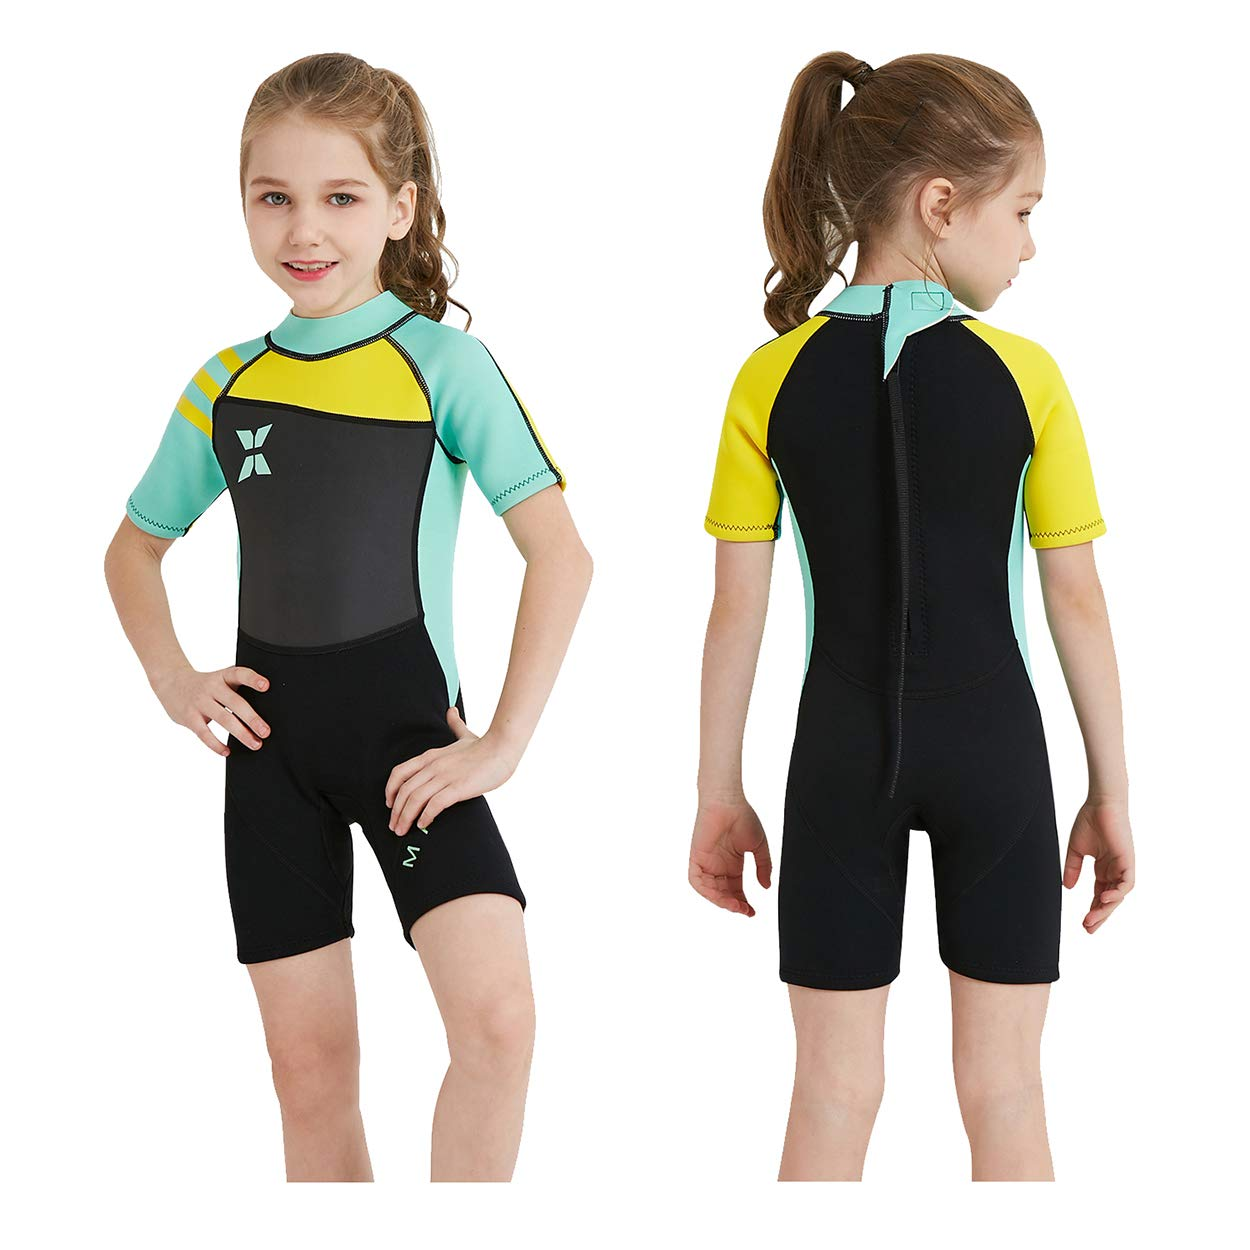 TOPDIVE Dive & SAIL Kids Wetsuit Shorty, 2.5mm Neoprene Thermal Swimsuit, Youth Boys and Girls Wet Suits for Snorkel Diving, Full Suit and Shorty Swimsuit (Green, Kids S Size for Toddlers) by DIVE & SAIL